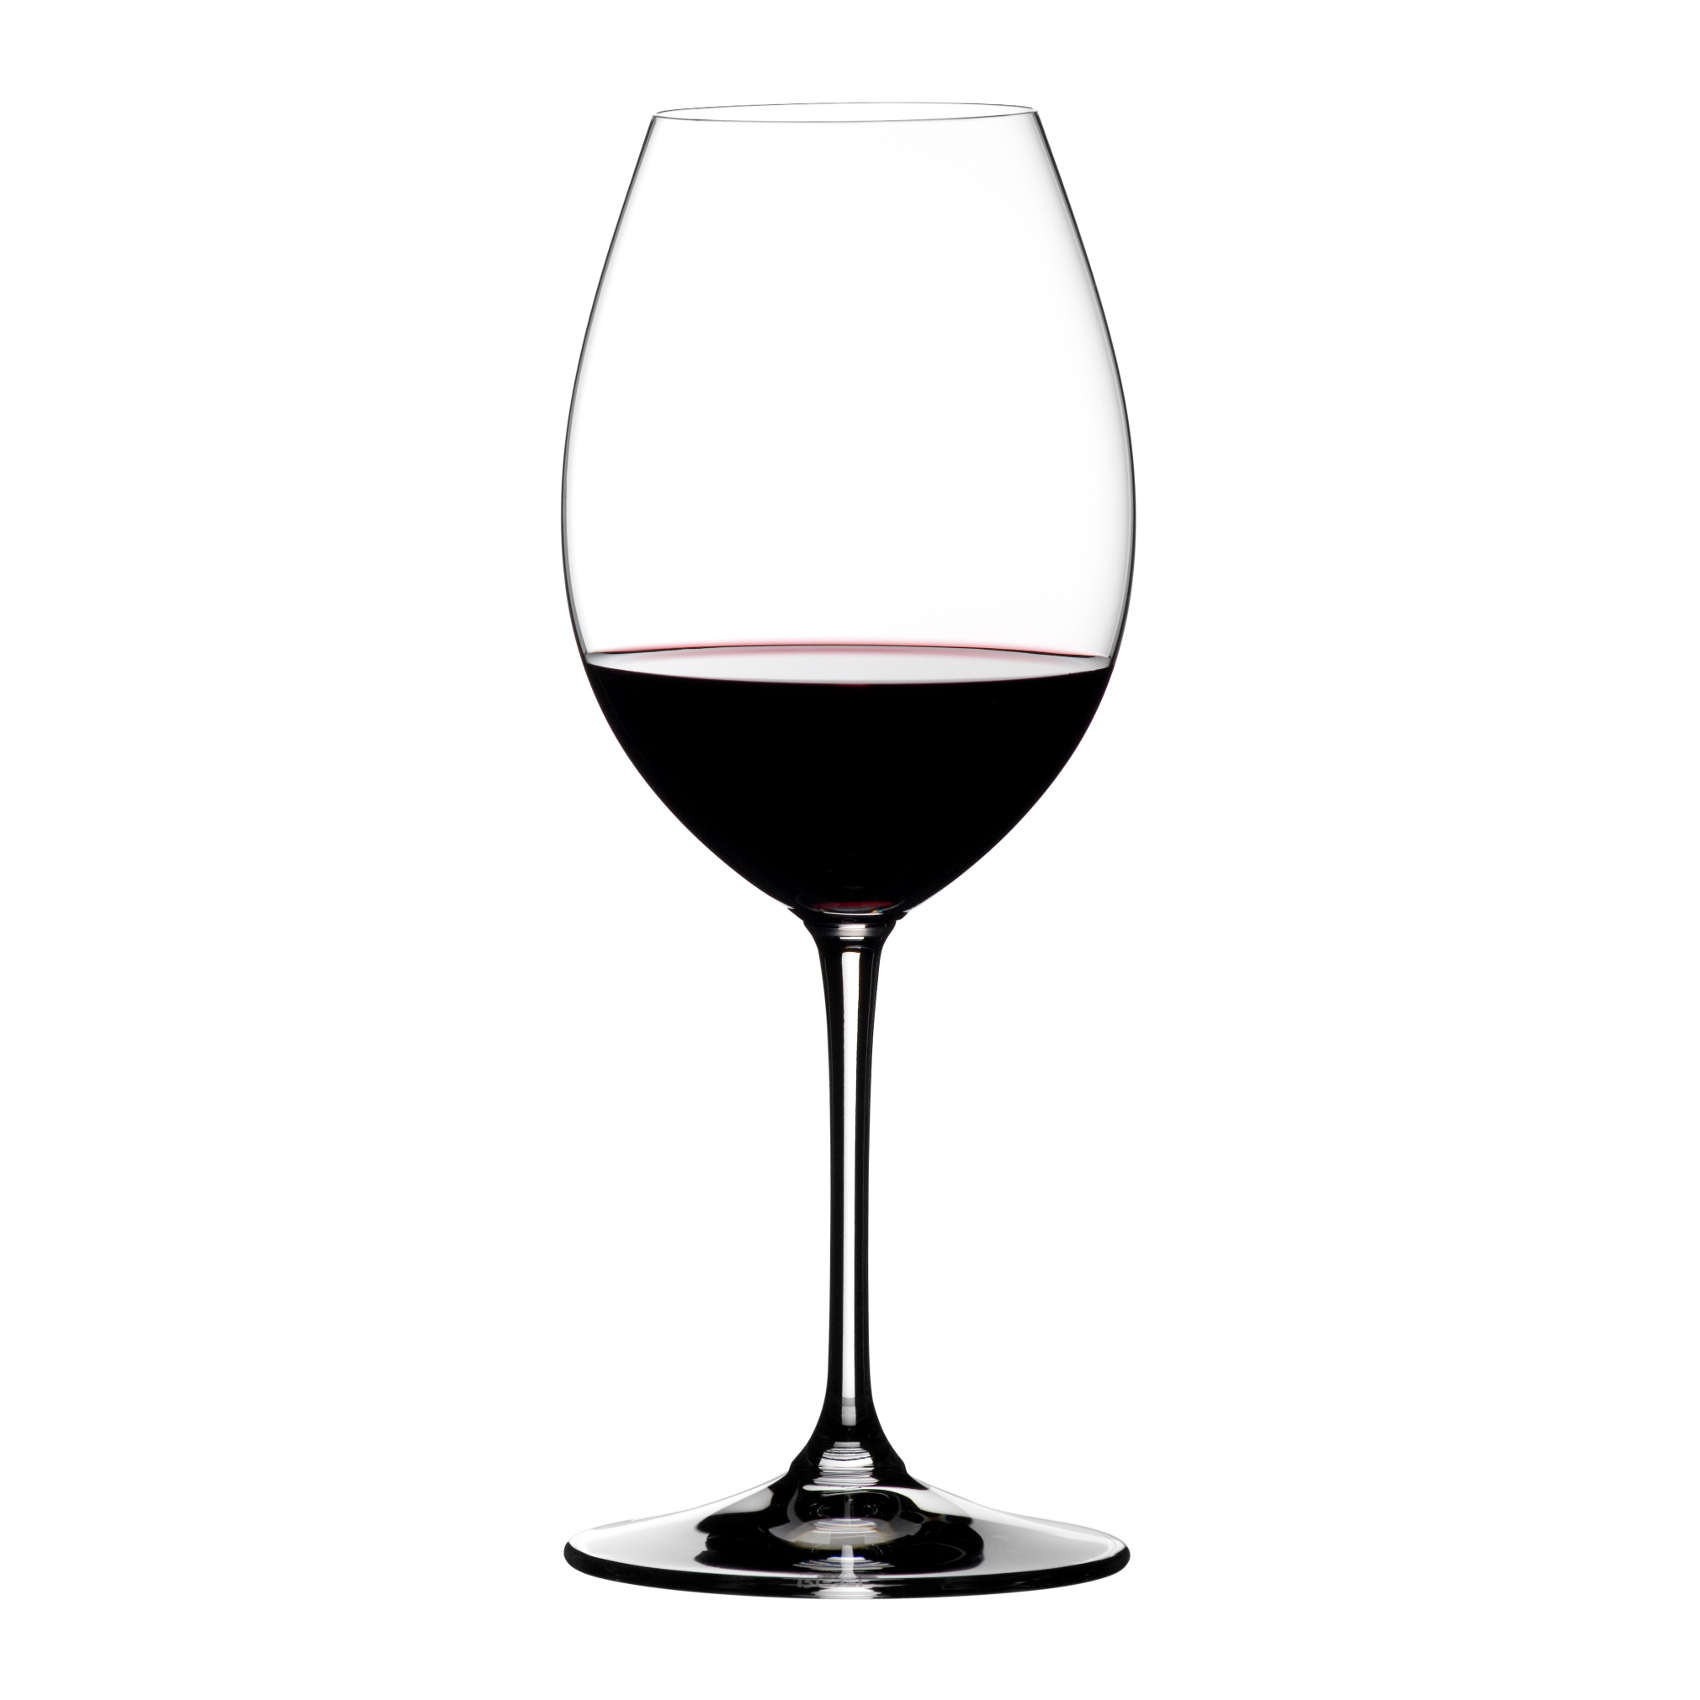 Riedel Vinum XL Crystal Syrah/Shiraz Wine Glass Set, Buy 3 Get 4